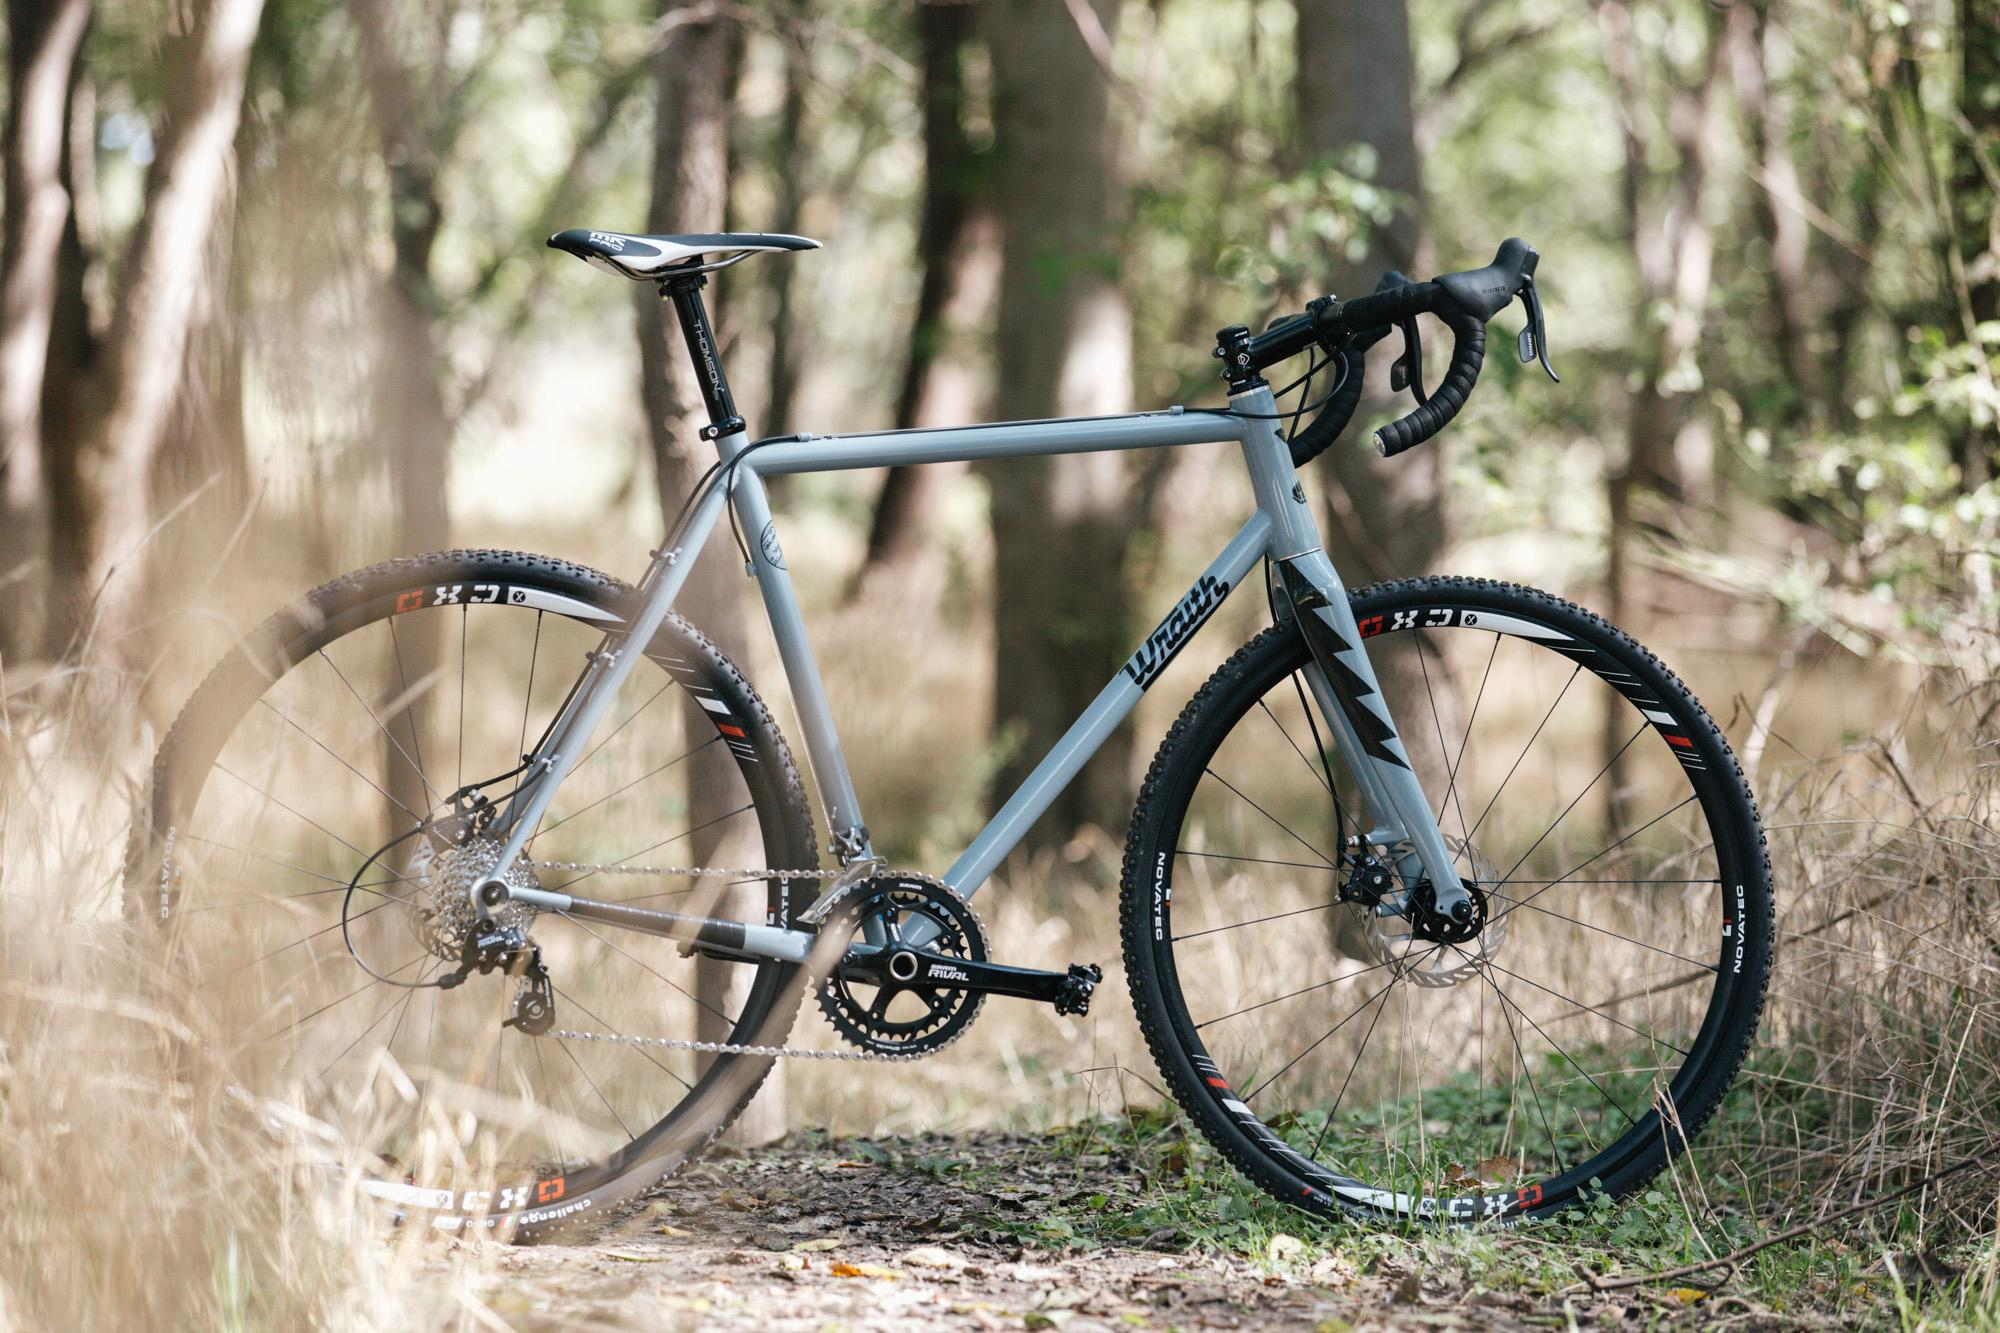 Wraith Fabrication Paycheck Disc CX Bike